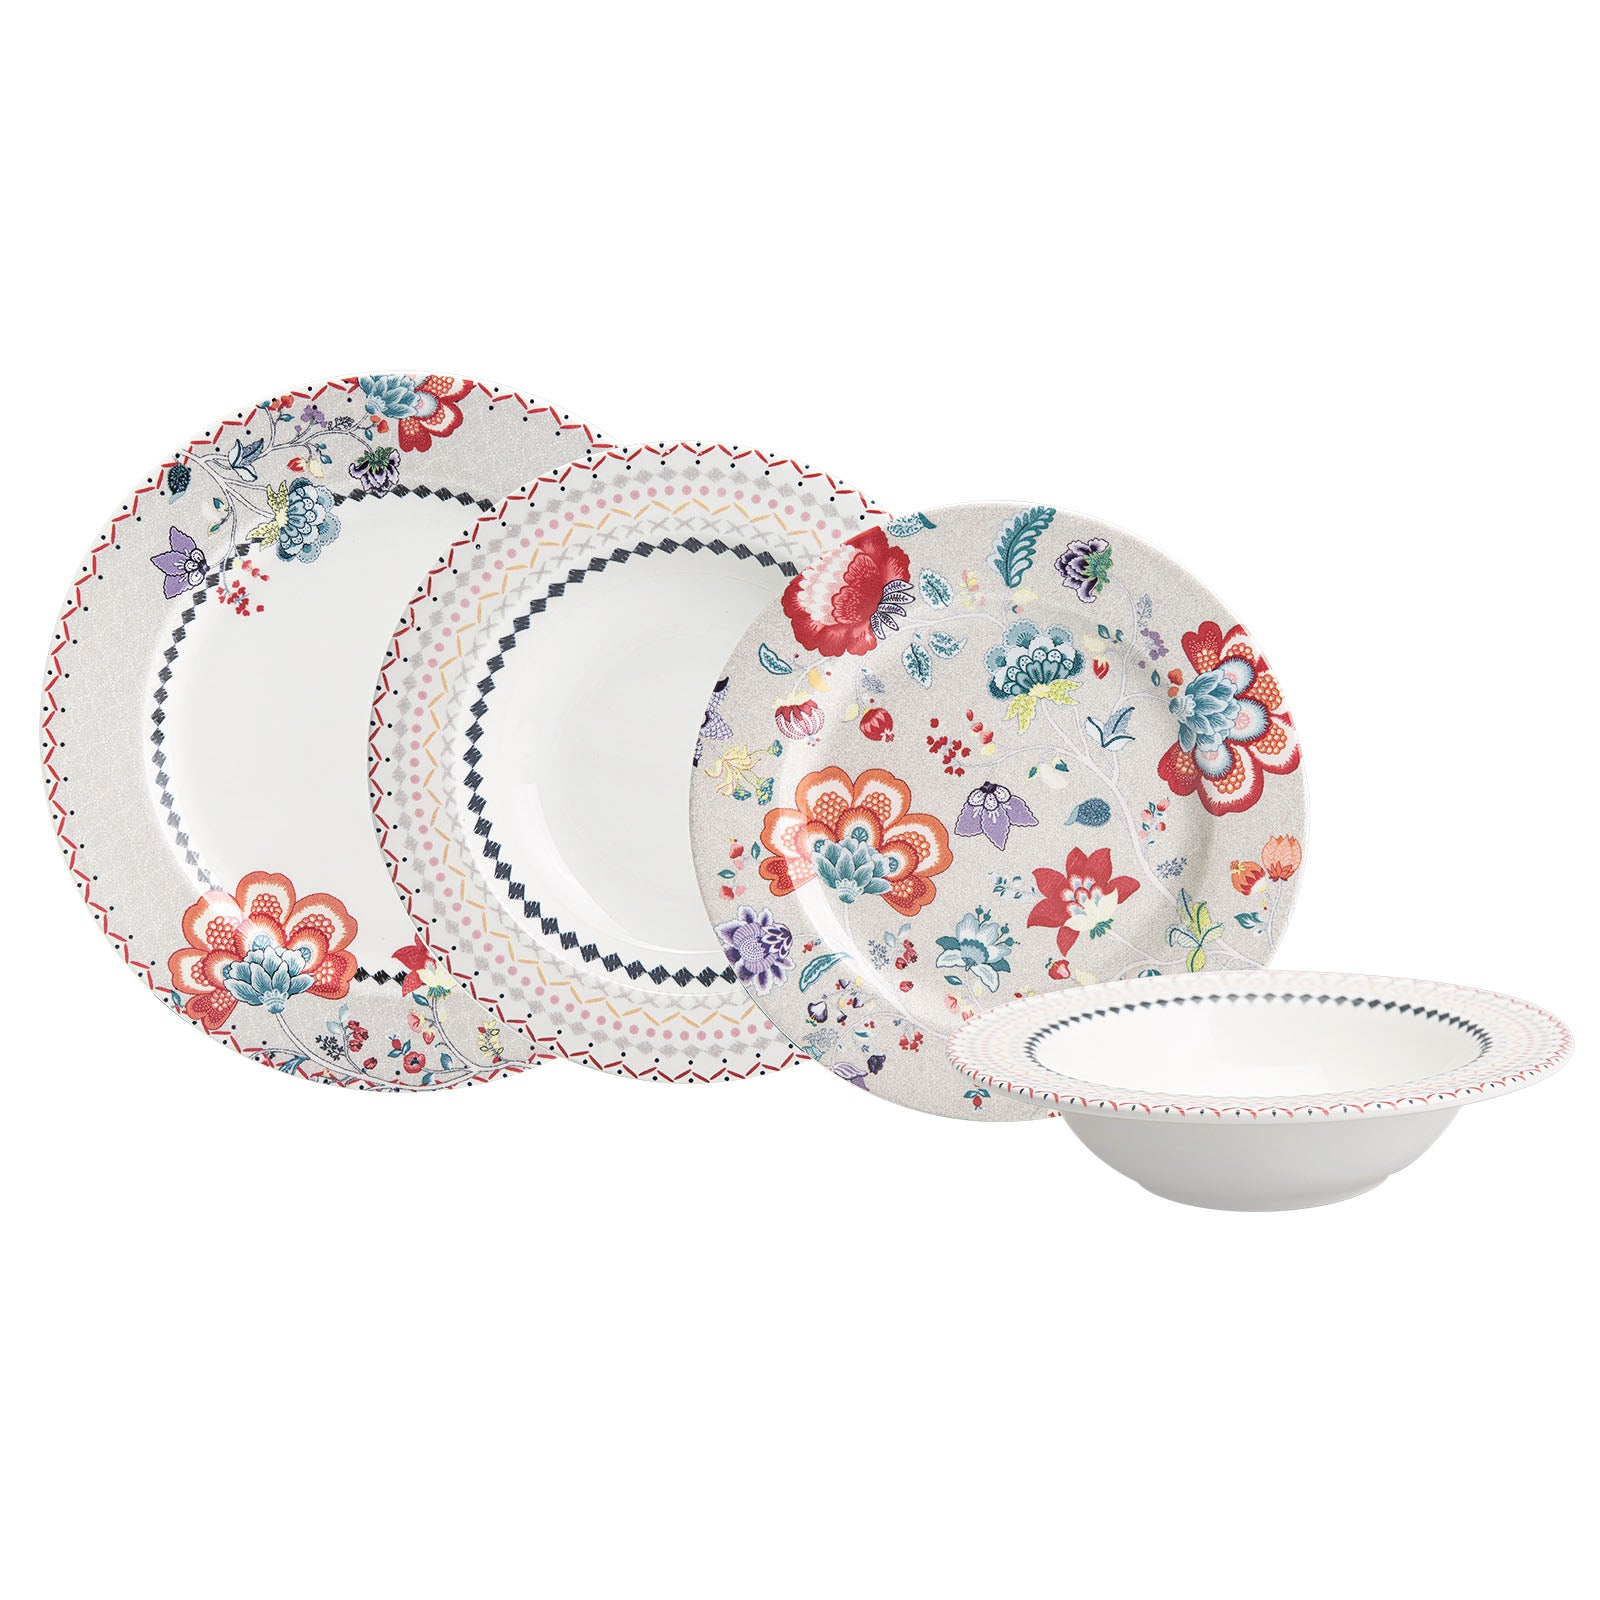 Pre-Order 50 days delivery 24 pieces May Flower 6-Person Dinner Set 153.03.07.9969